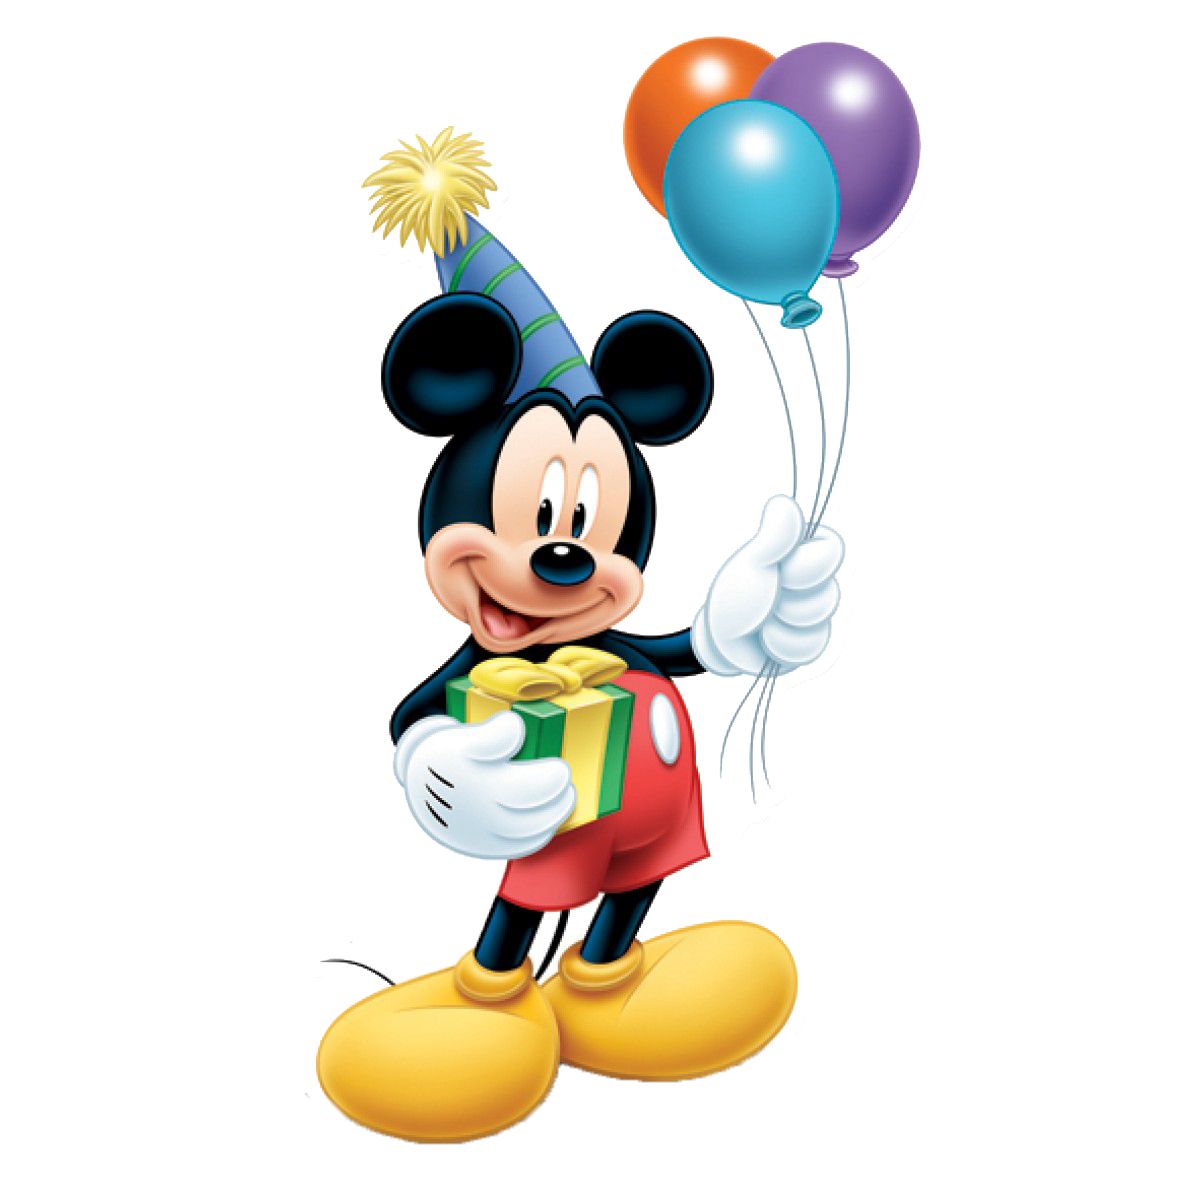 Mickey Mouse Minnie Mouse Balloon Standee Birthday.